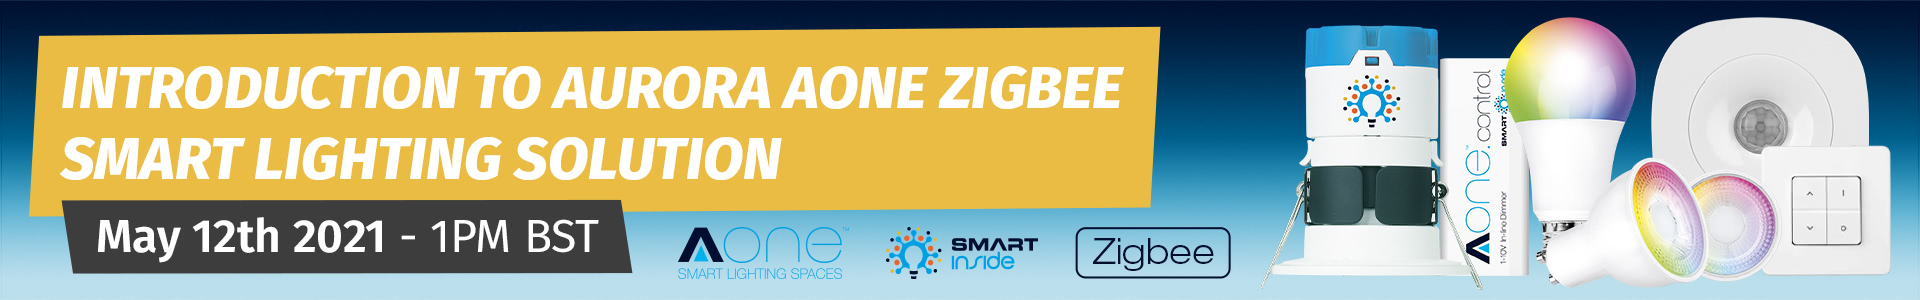 • Introduction to Aurora AOne Zigbee Smart Lighting Solution - May 12th - 1PM BST